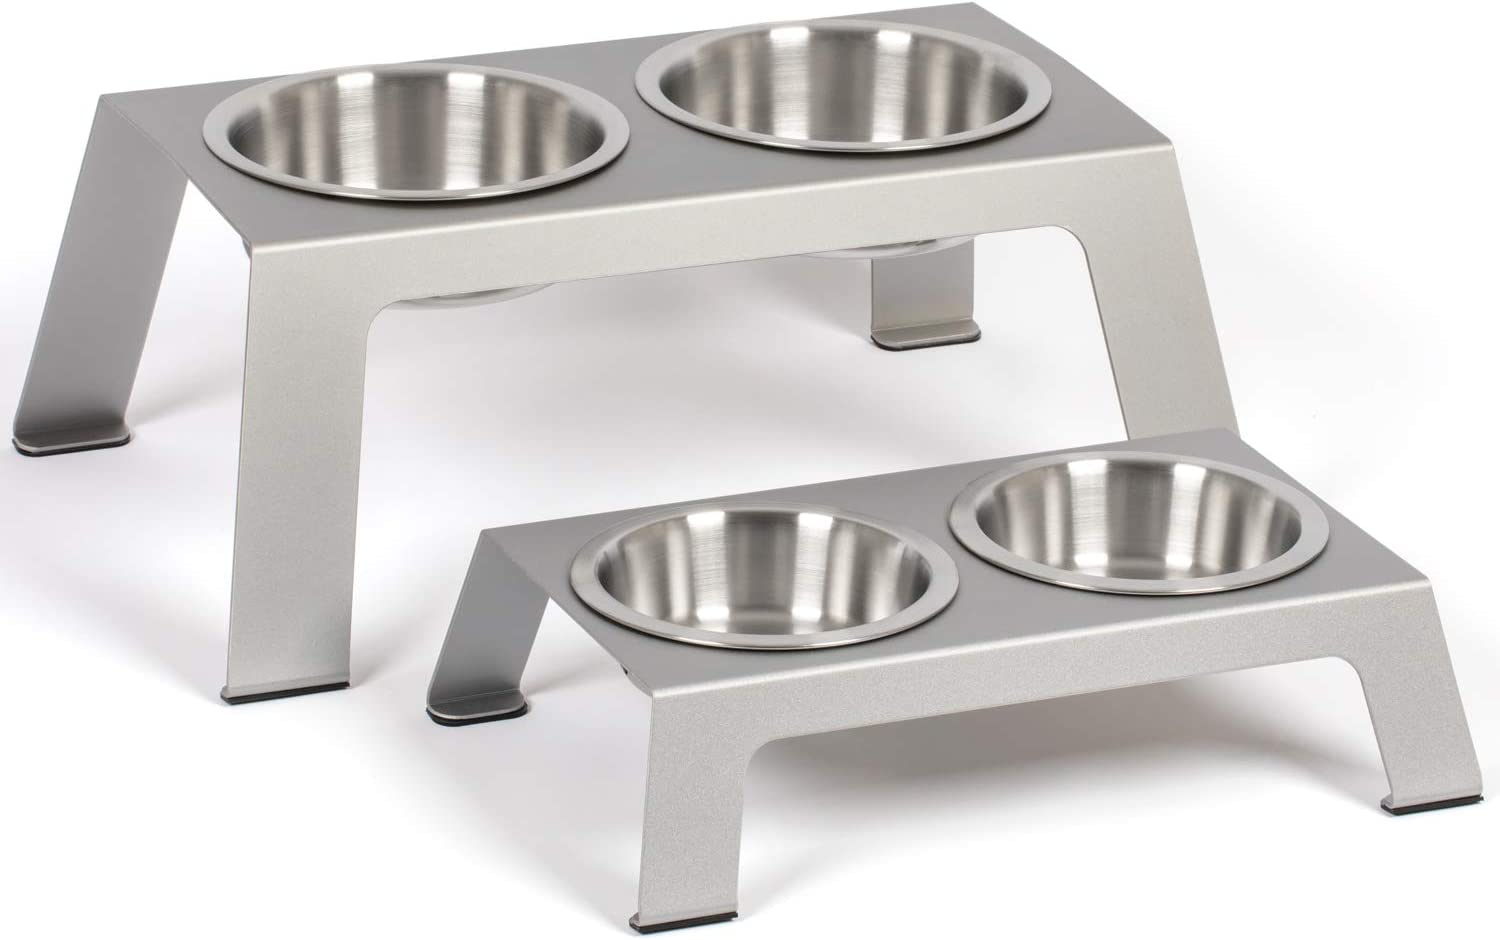 "PetFusion Elevated Dog Bowls, Cat Bowls -- Premium anodized Aluminum feeder (Short 4"", Tall 8"" options). US FOOD GRADE Stainless Steel raised bowls"